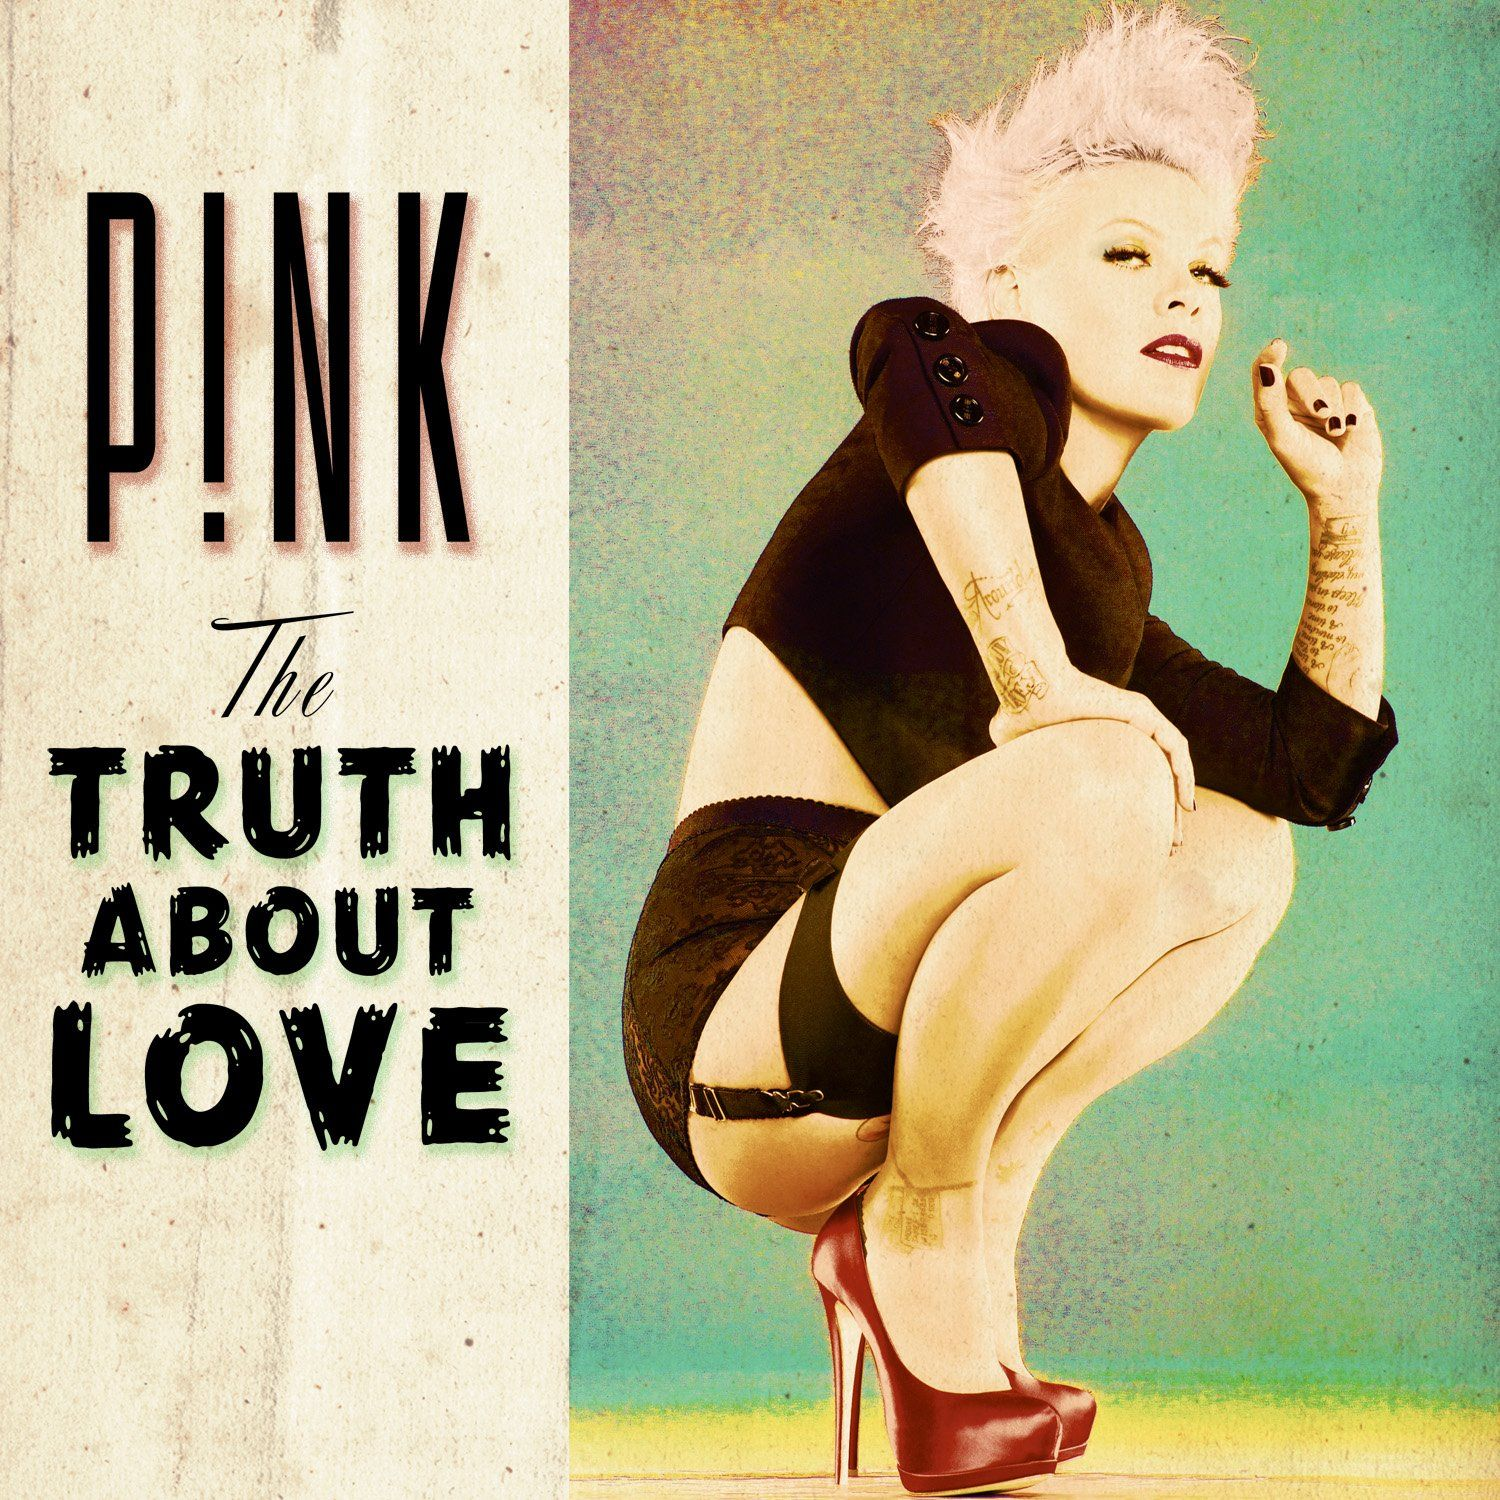 55th GRAMMY Awards - Best Pop Vocal Album Nominee.  'The Truth About Love' P!nk  Don't forget to tune into Music's Biggest Night on 2/10/13!